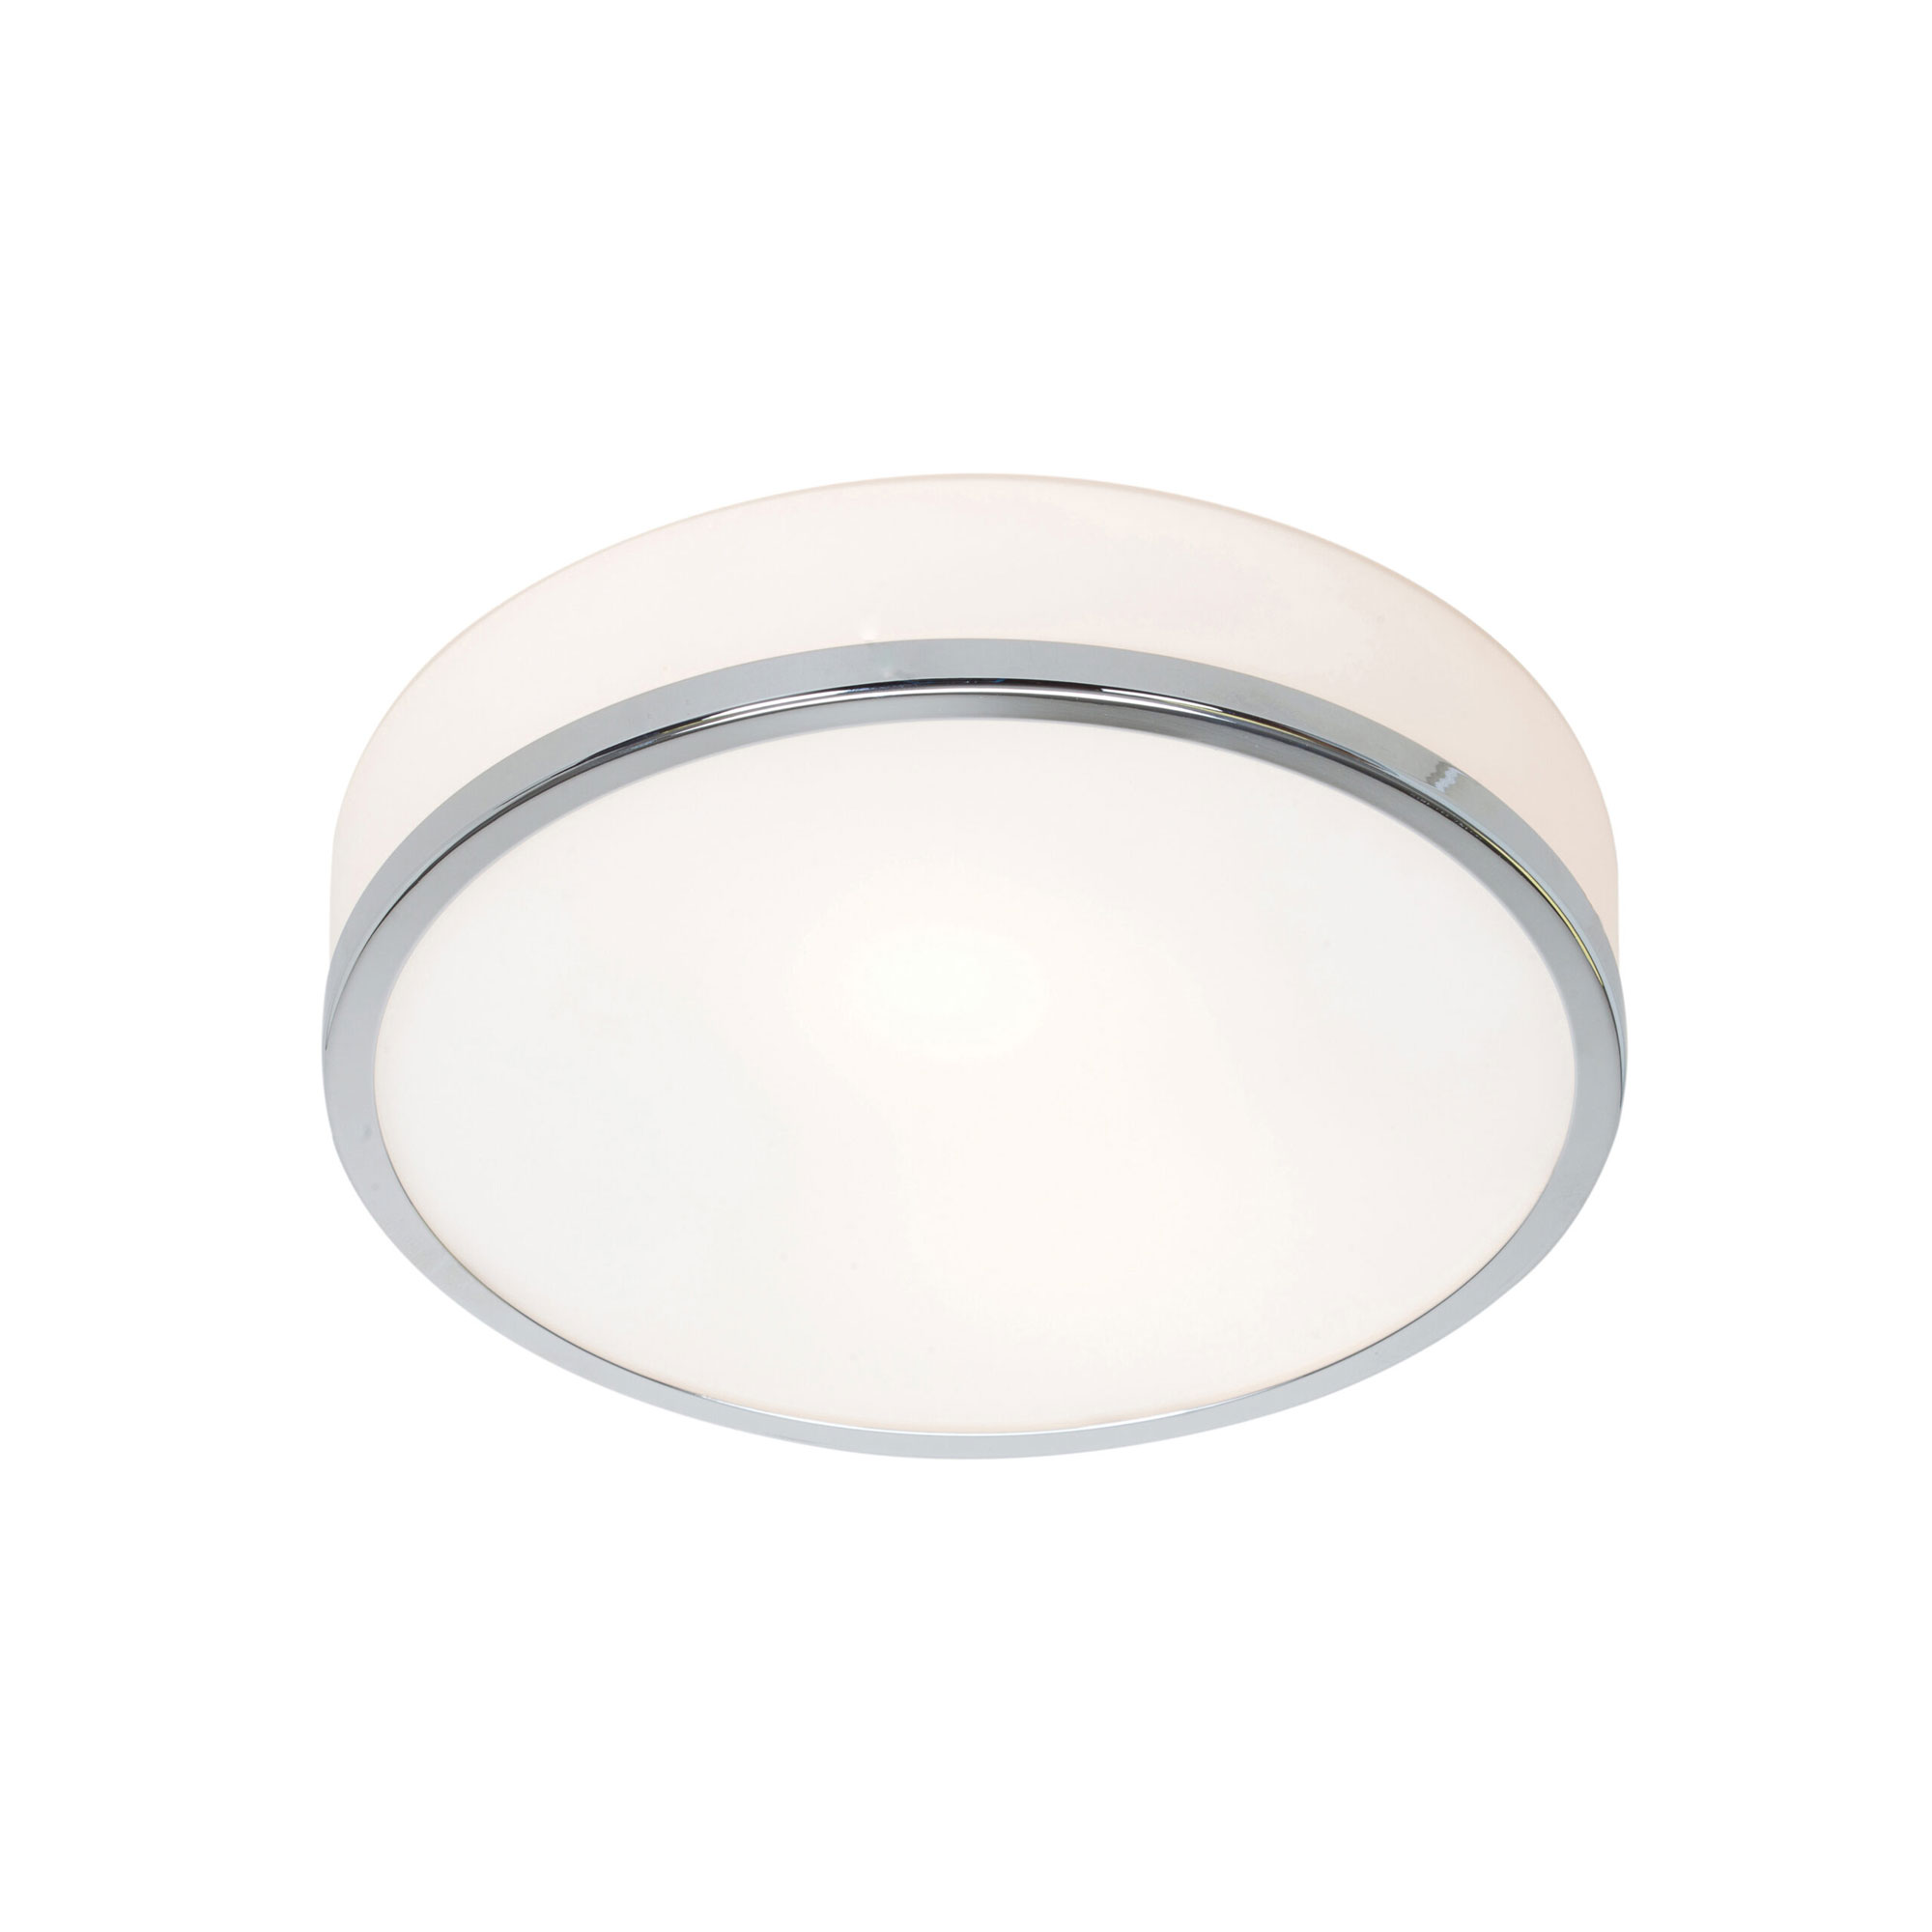 Aero ceiling light fixture by access 20670 chopl mozeypictures Gallery